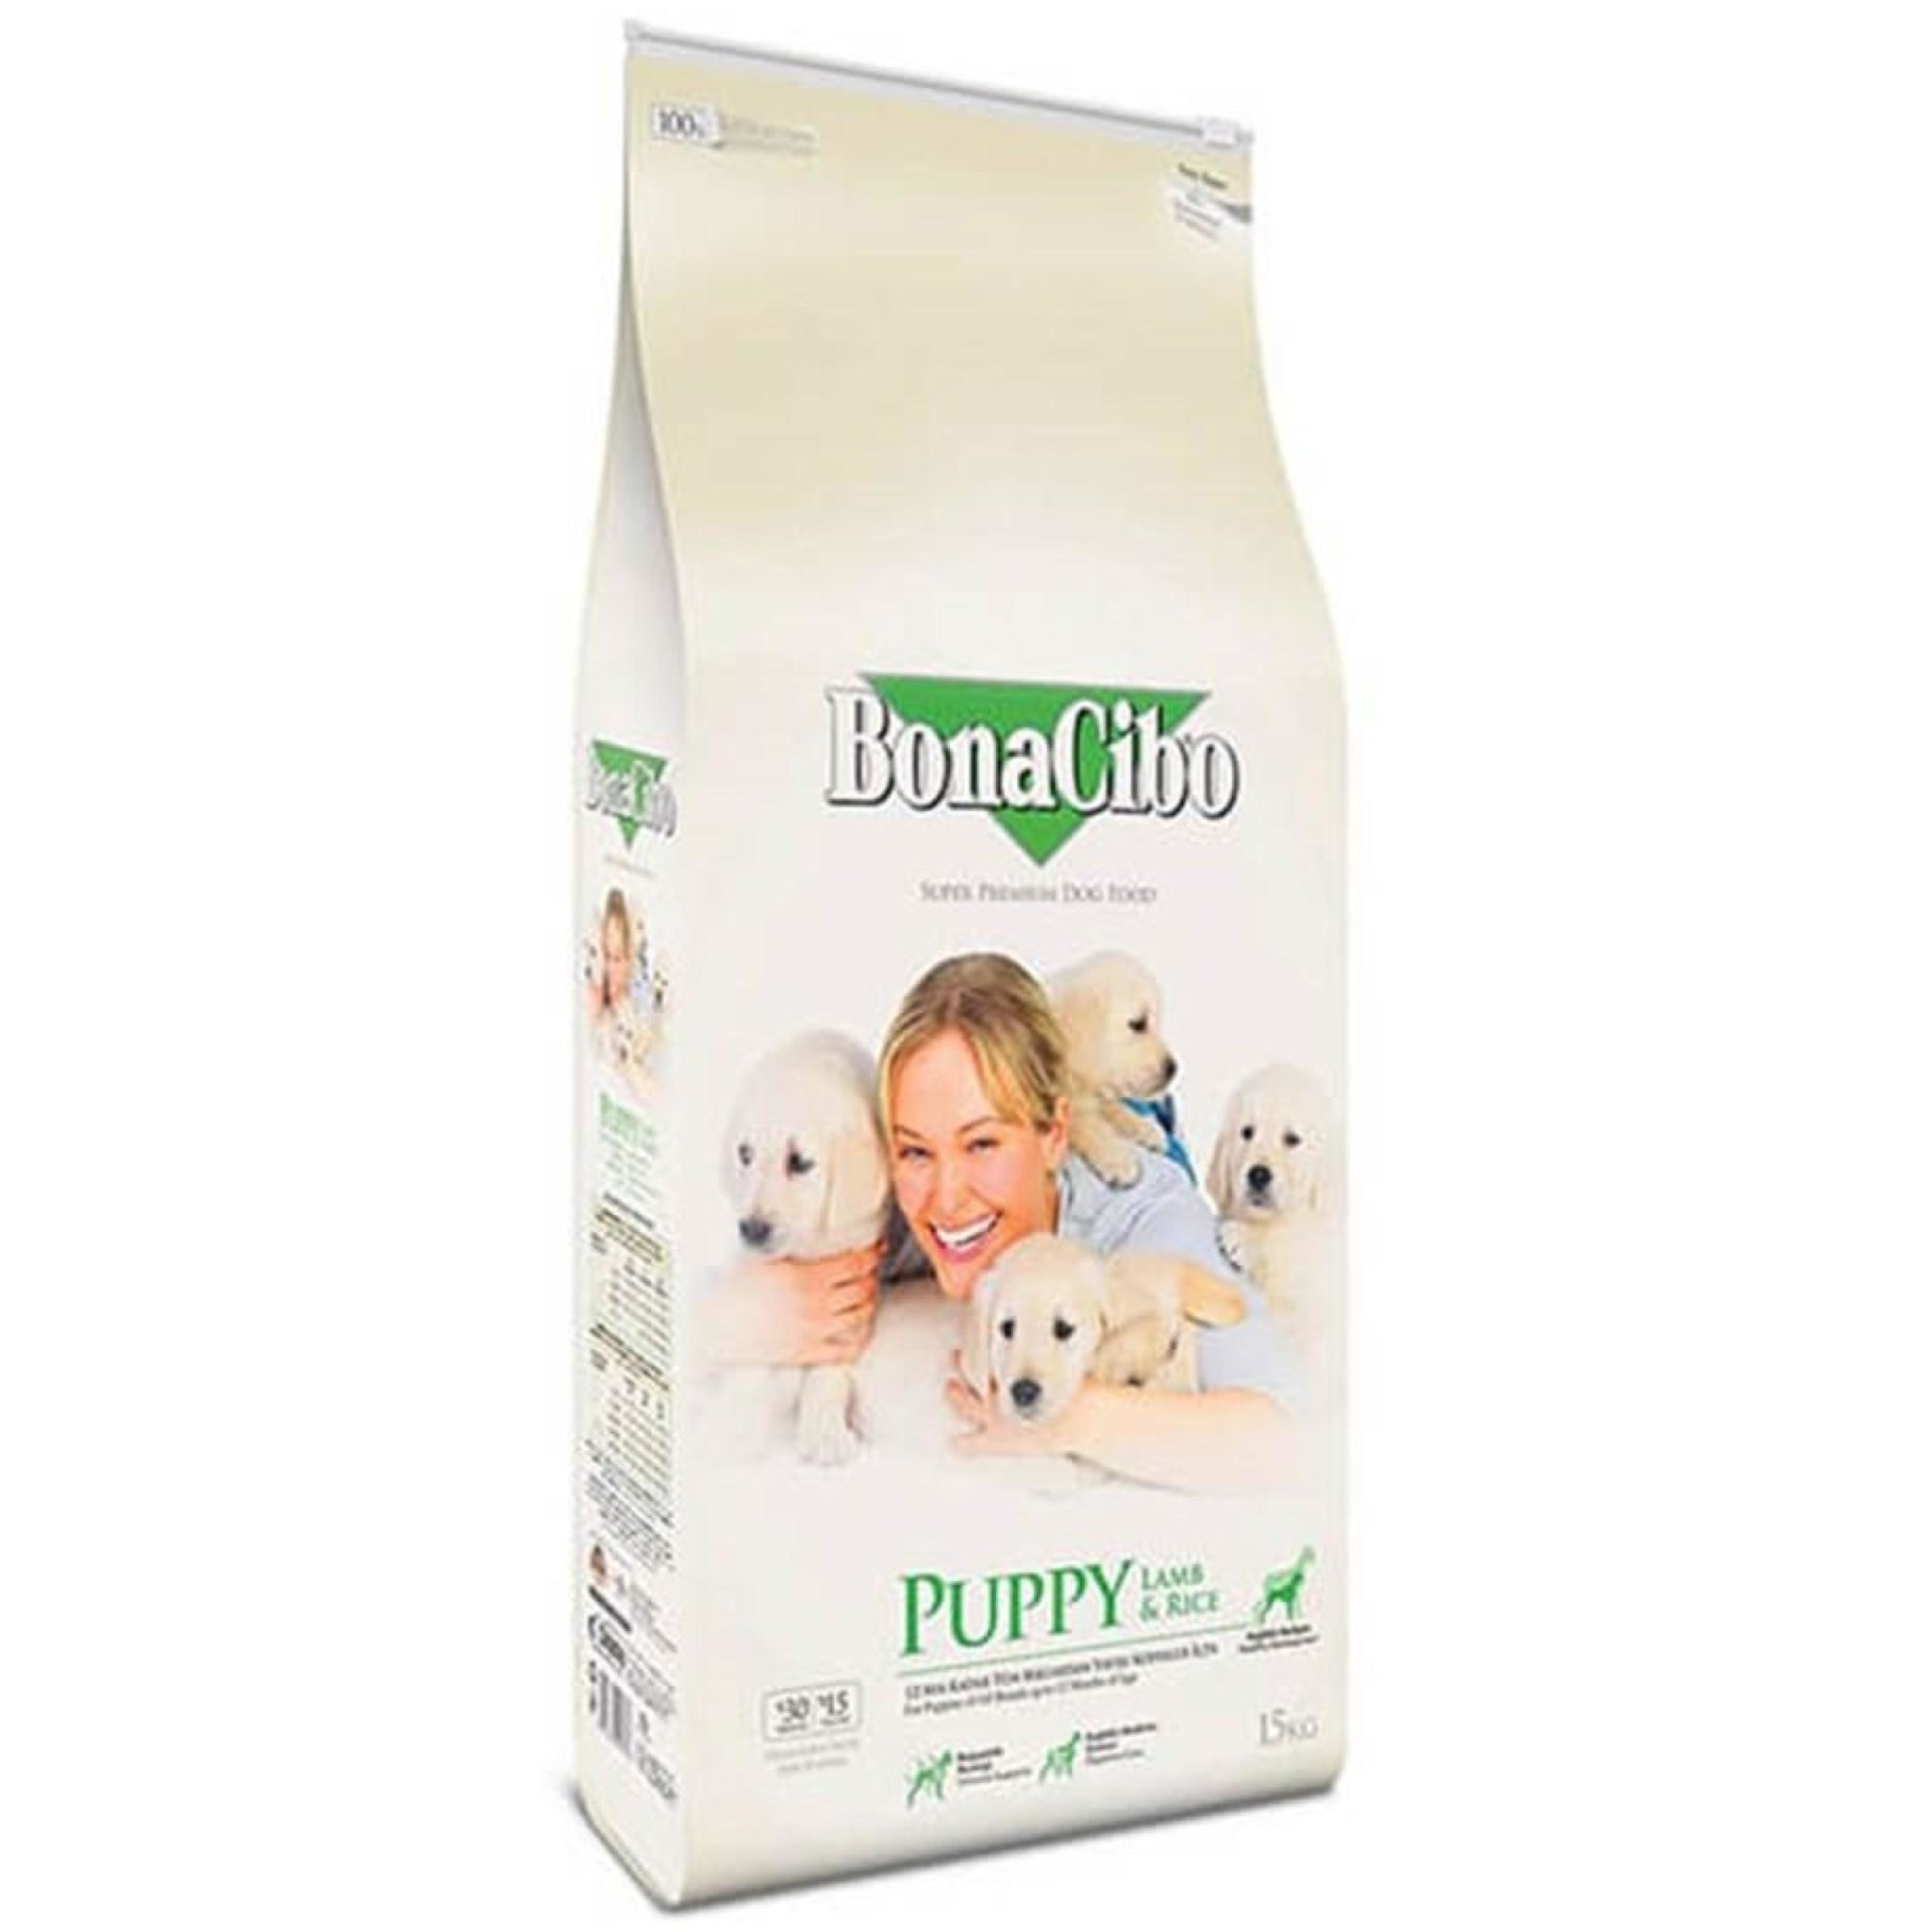 BonaCibo Puppy Lamb and Rice Dog Food - Poochles